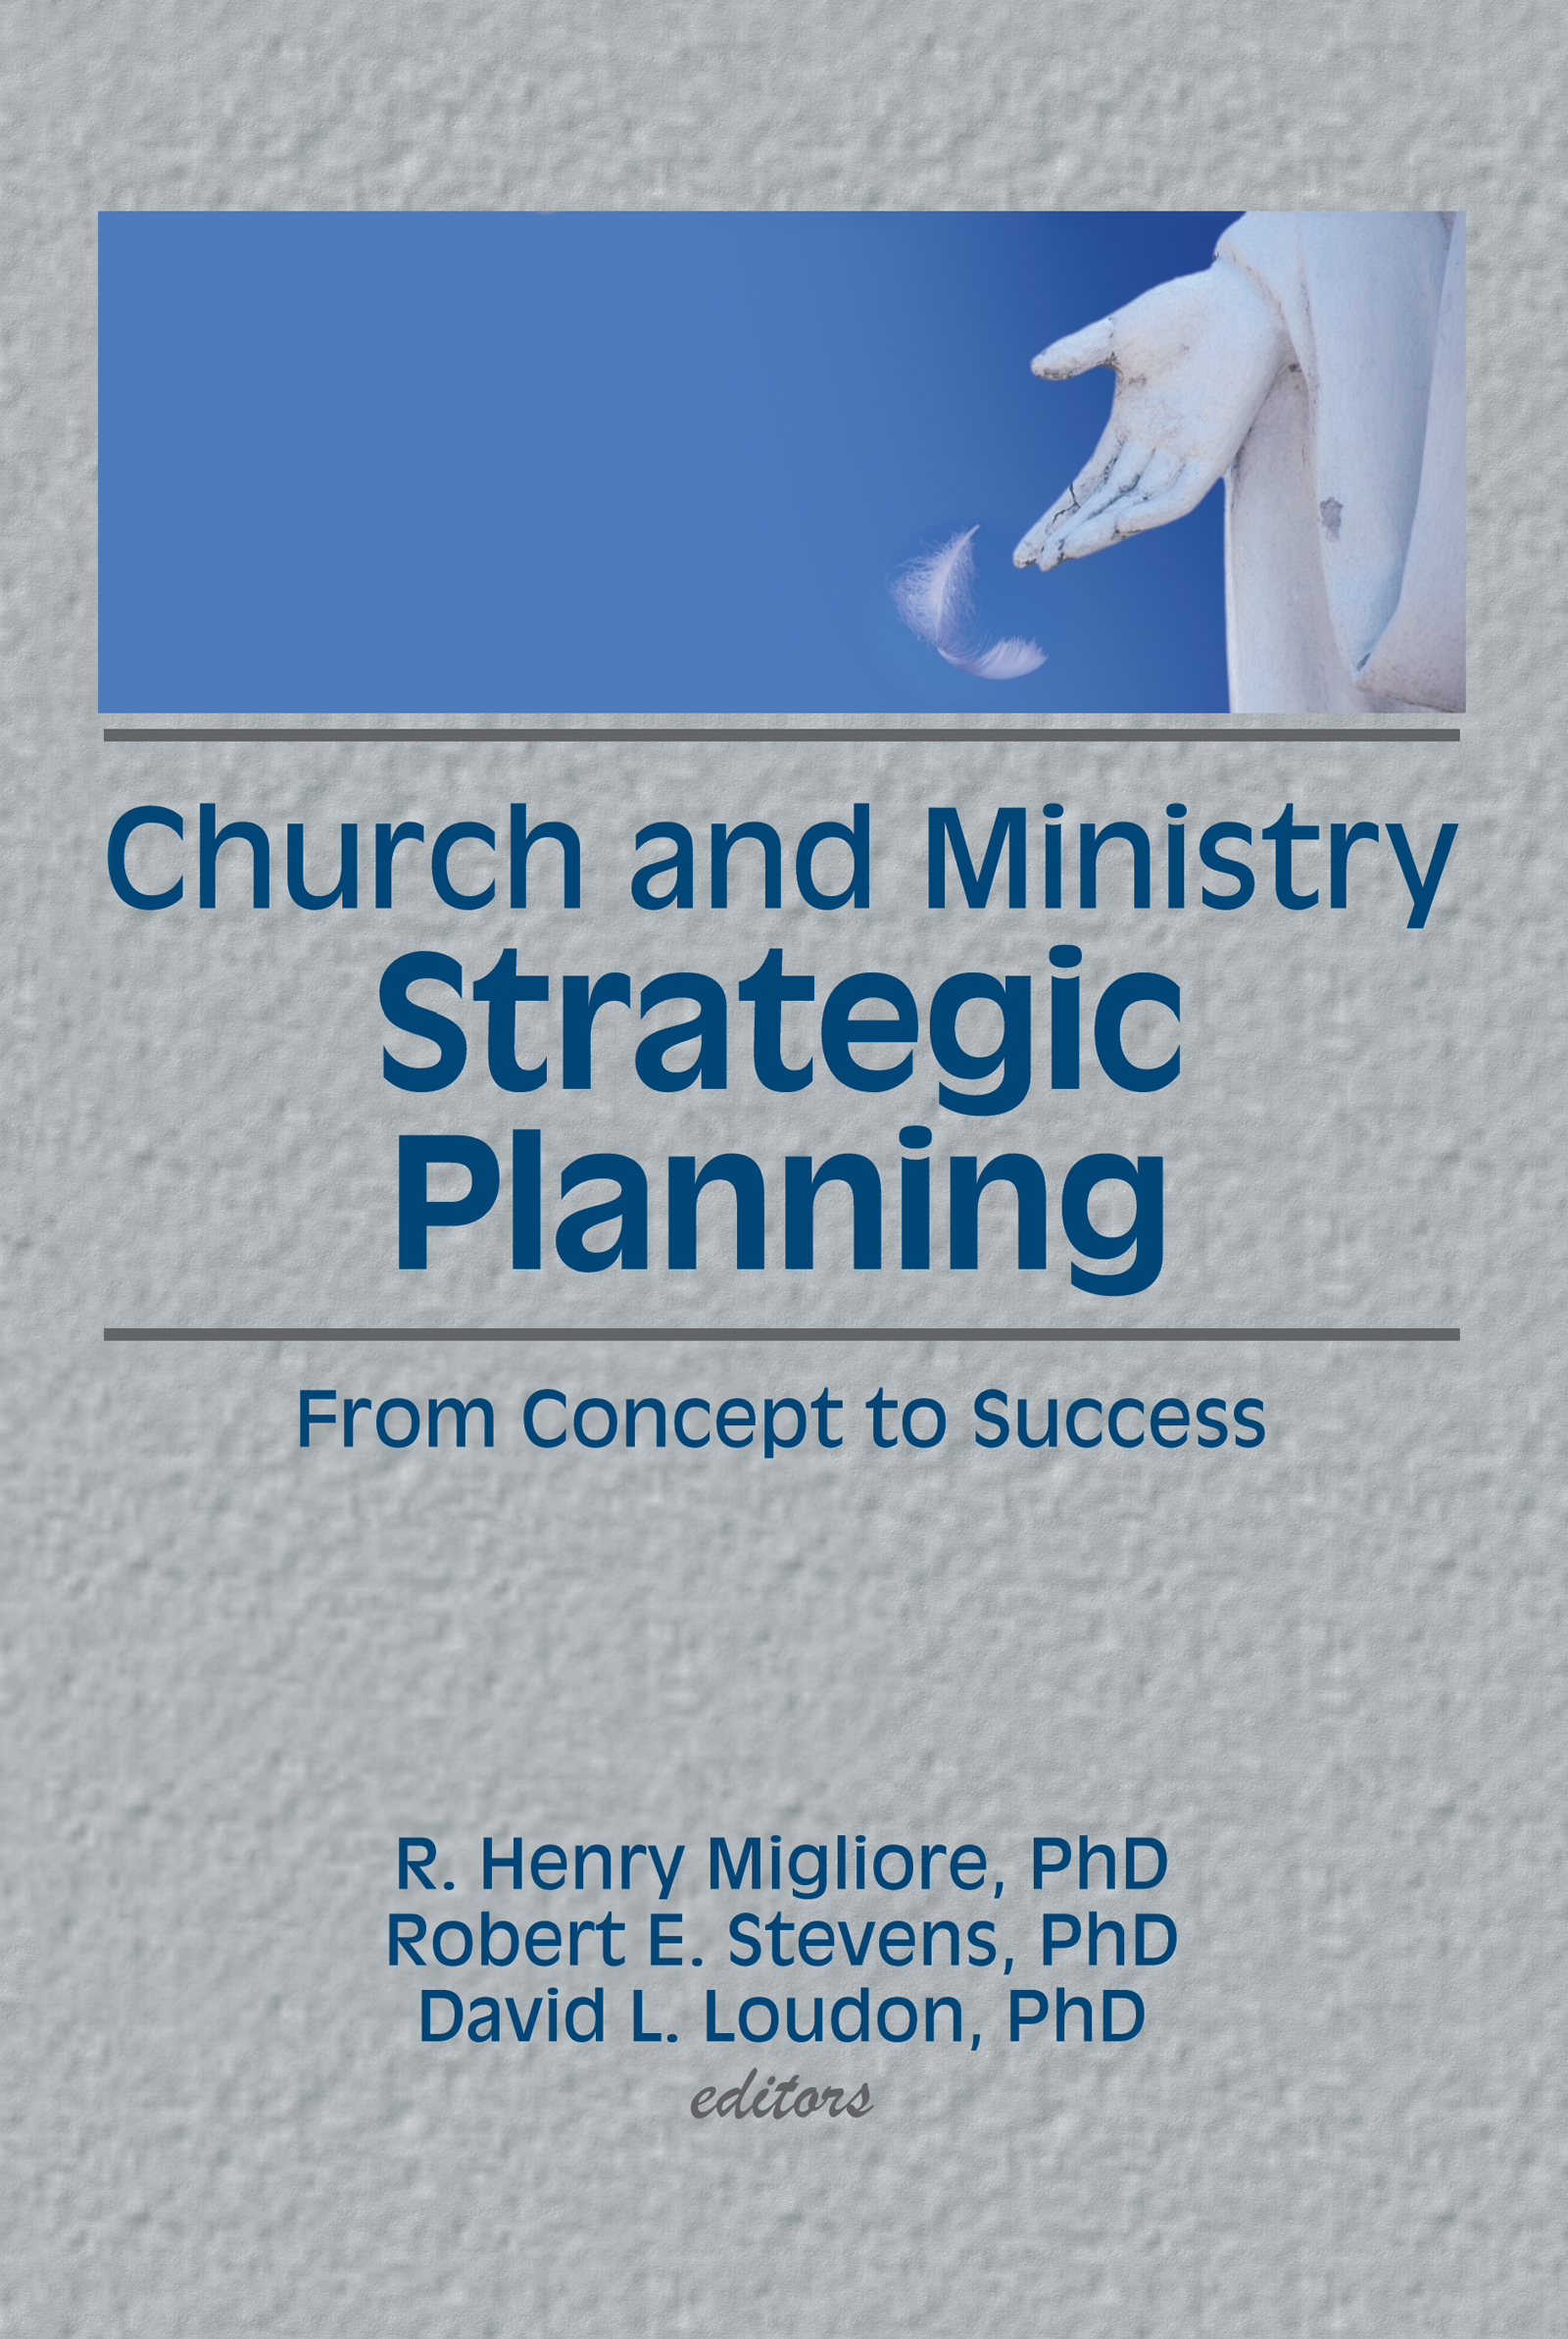 Church and Ministry Strategic Planning: From Concept to Success book cover